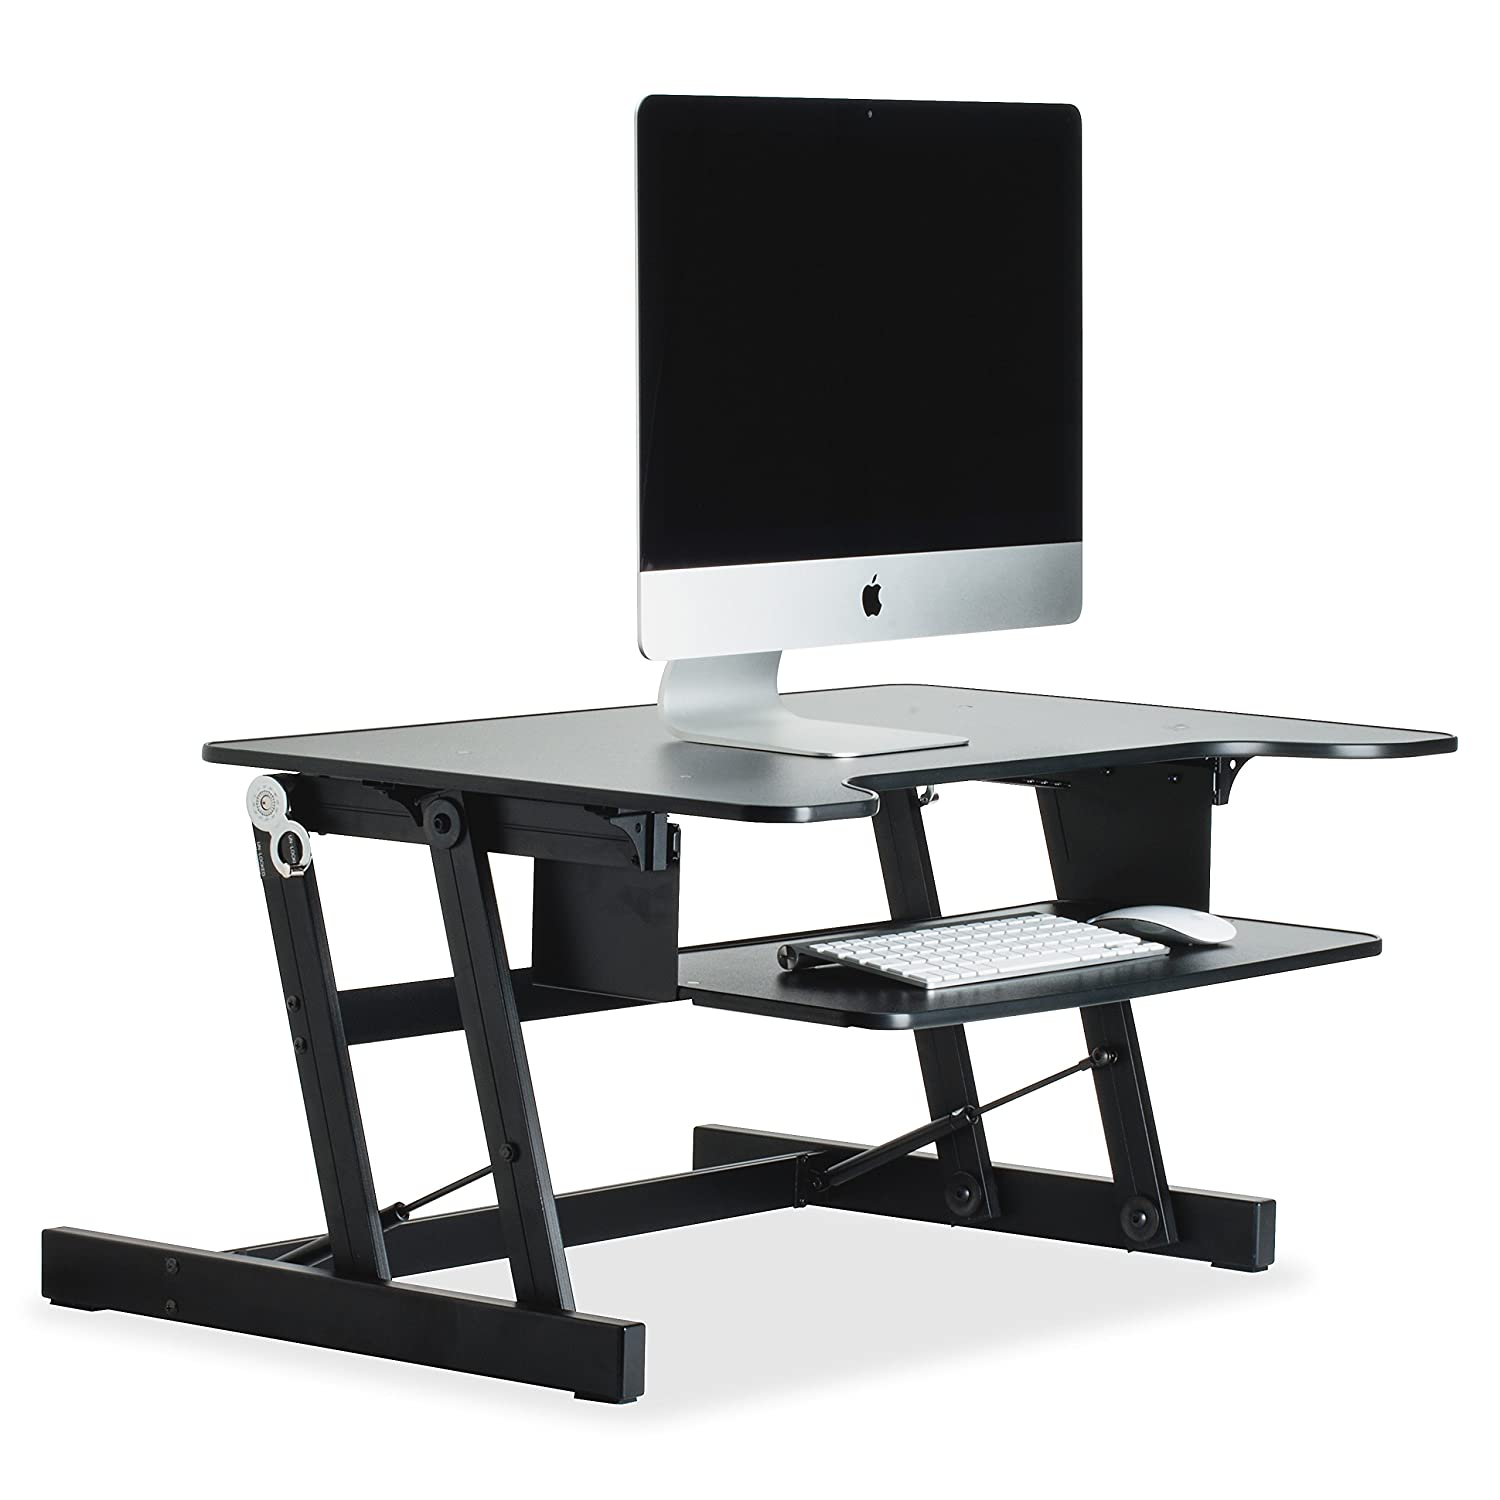 Amazon Lorell Sit to Stand monitor riser black puters